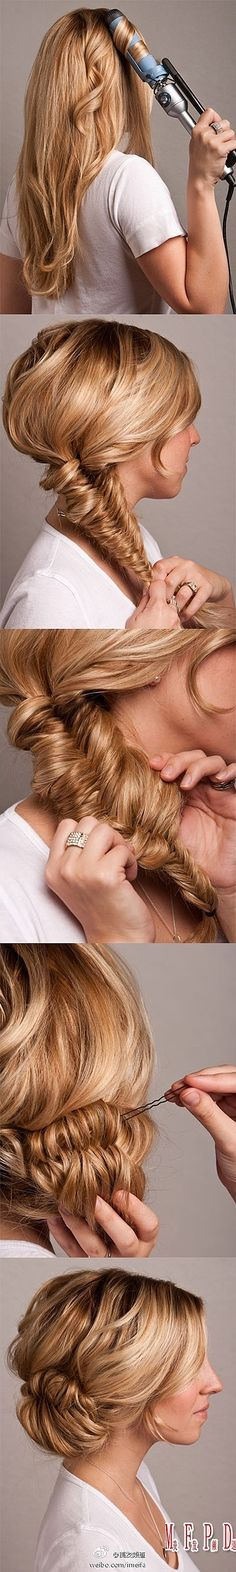 Bridal party style Night Hairstyles, Pretty Hairstyles, Hairstyle Ideas, Mermaid Hairstyles, Country Hairstyles, Style Hairstyle, Messy Hairstyles, Bun Styles, Long Hair Styles